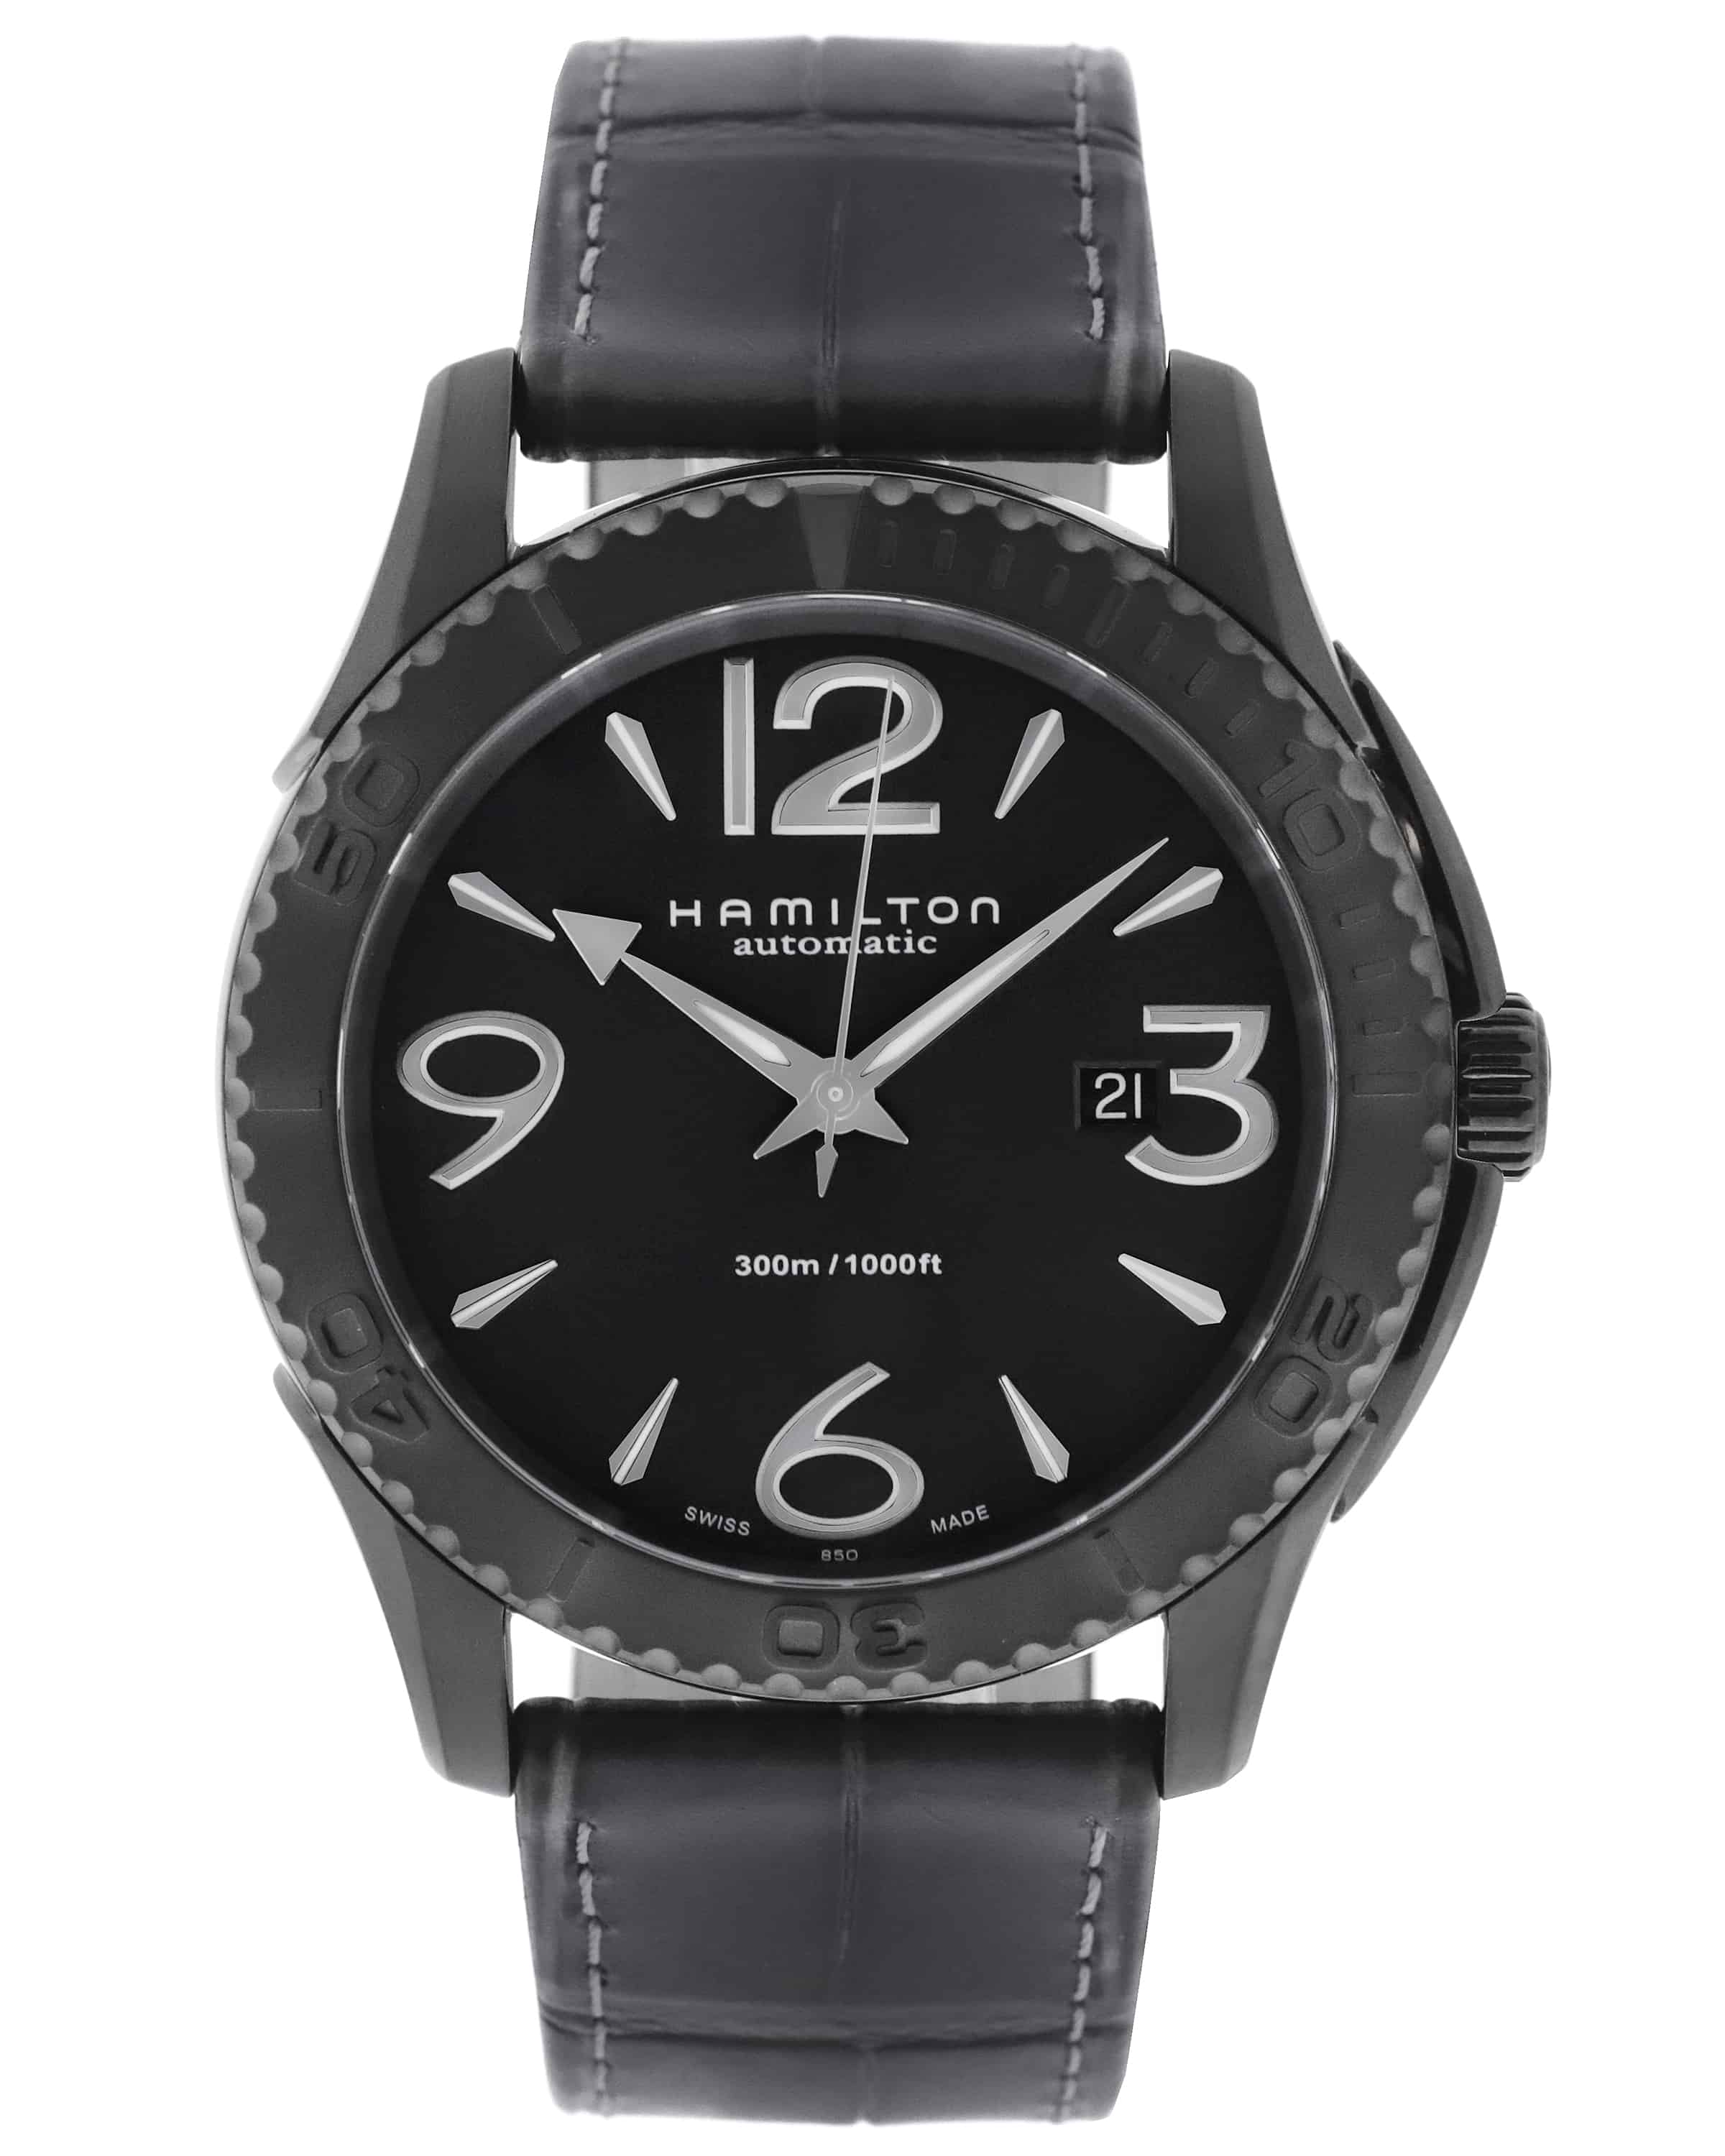 Hamilton Jazzmaster PVD Automatic Watch $429 + free s/h